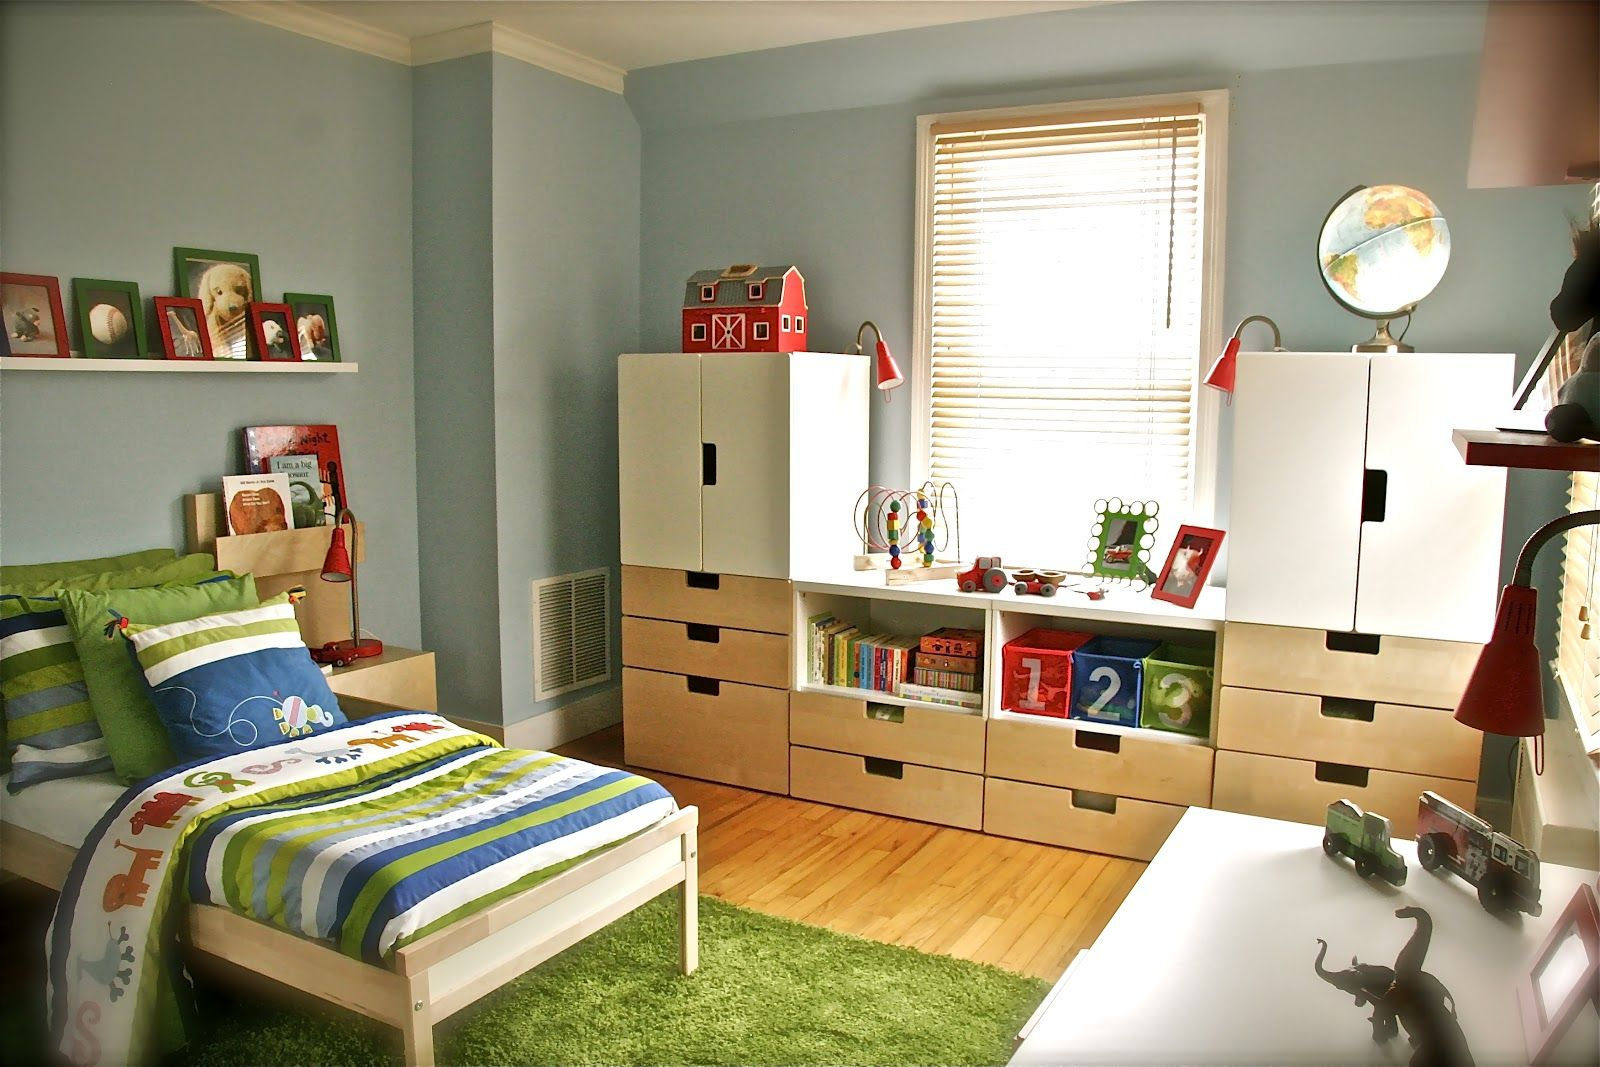 Children's storage ikea stuva Ikea kids room, Kids